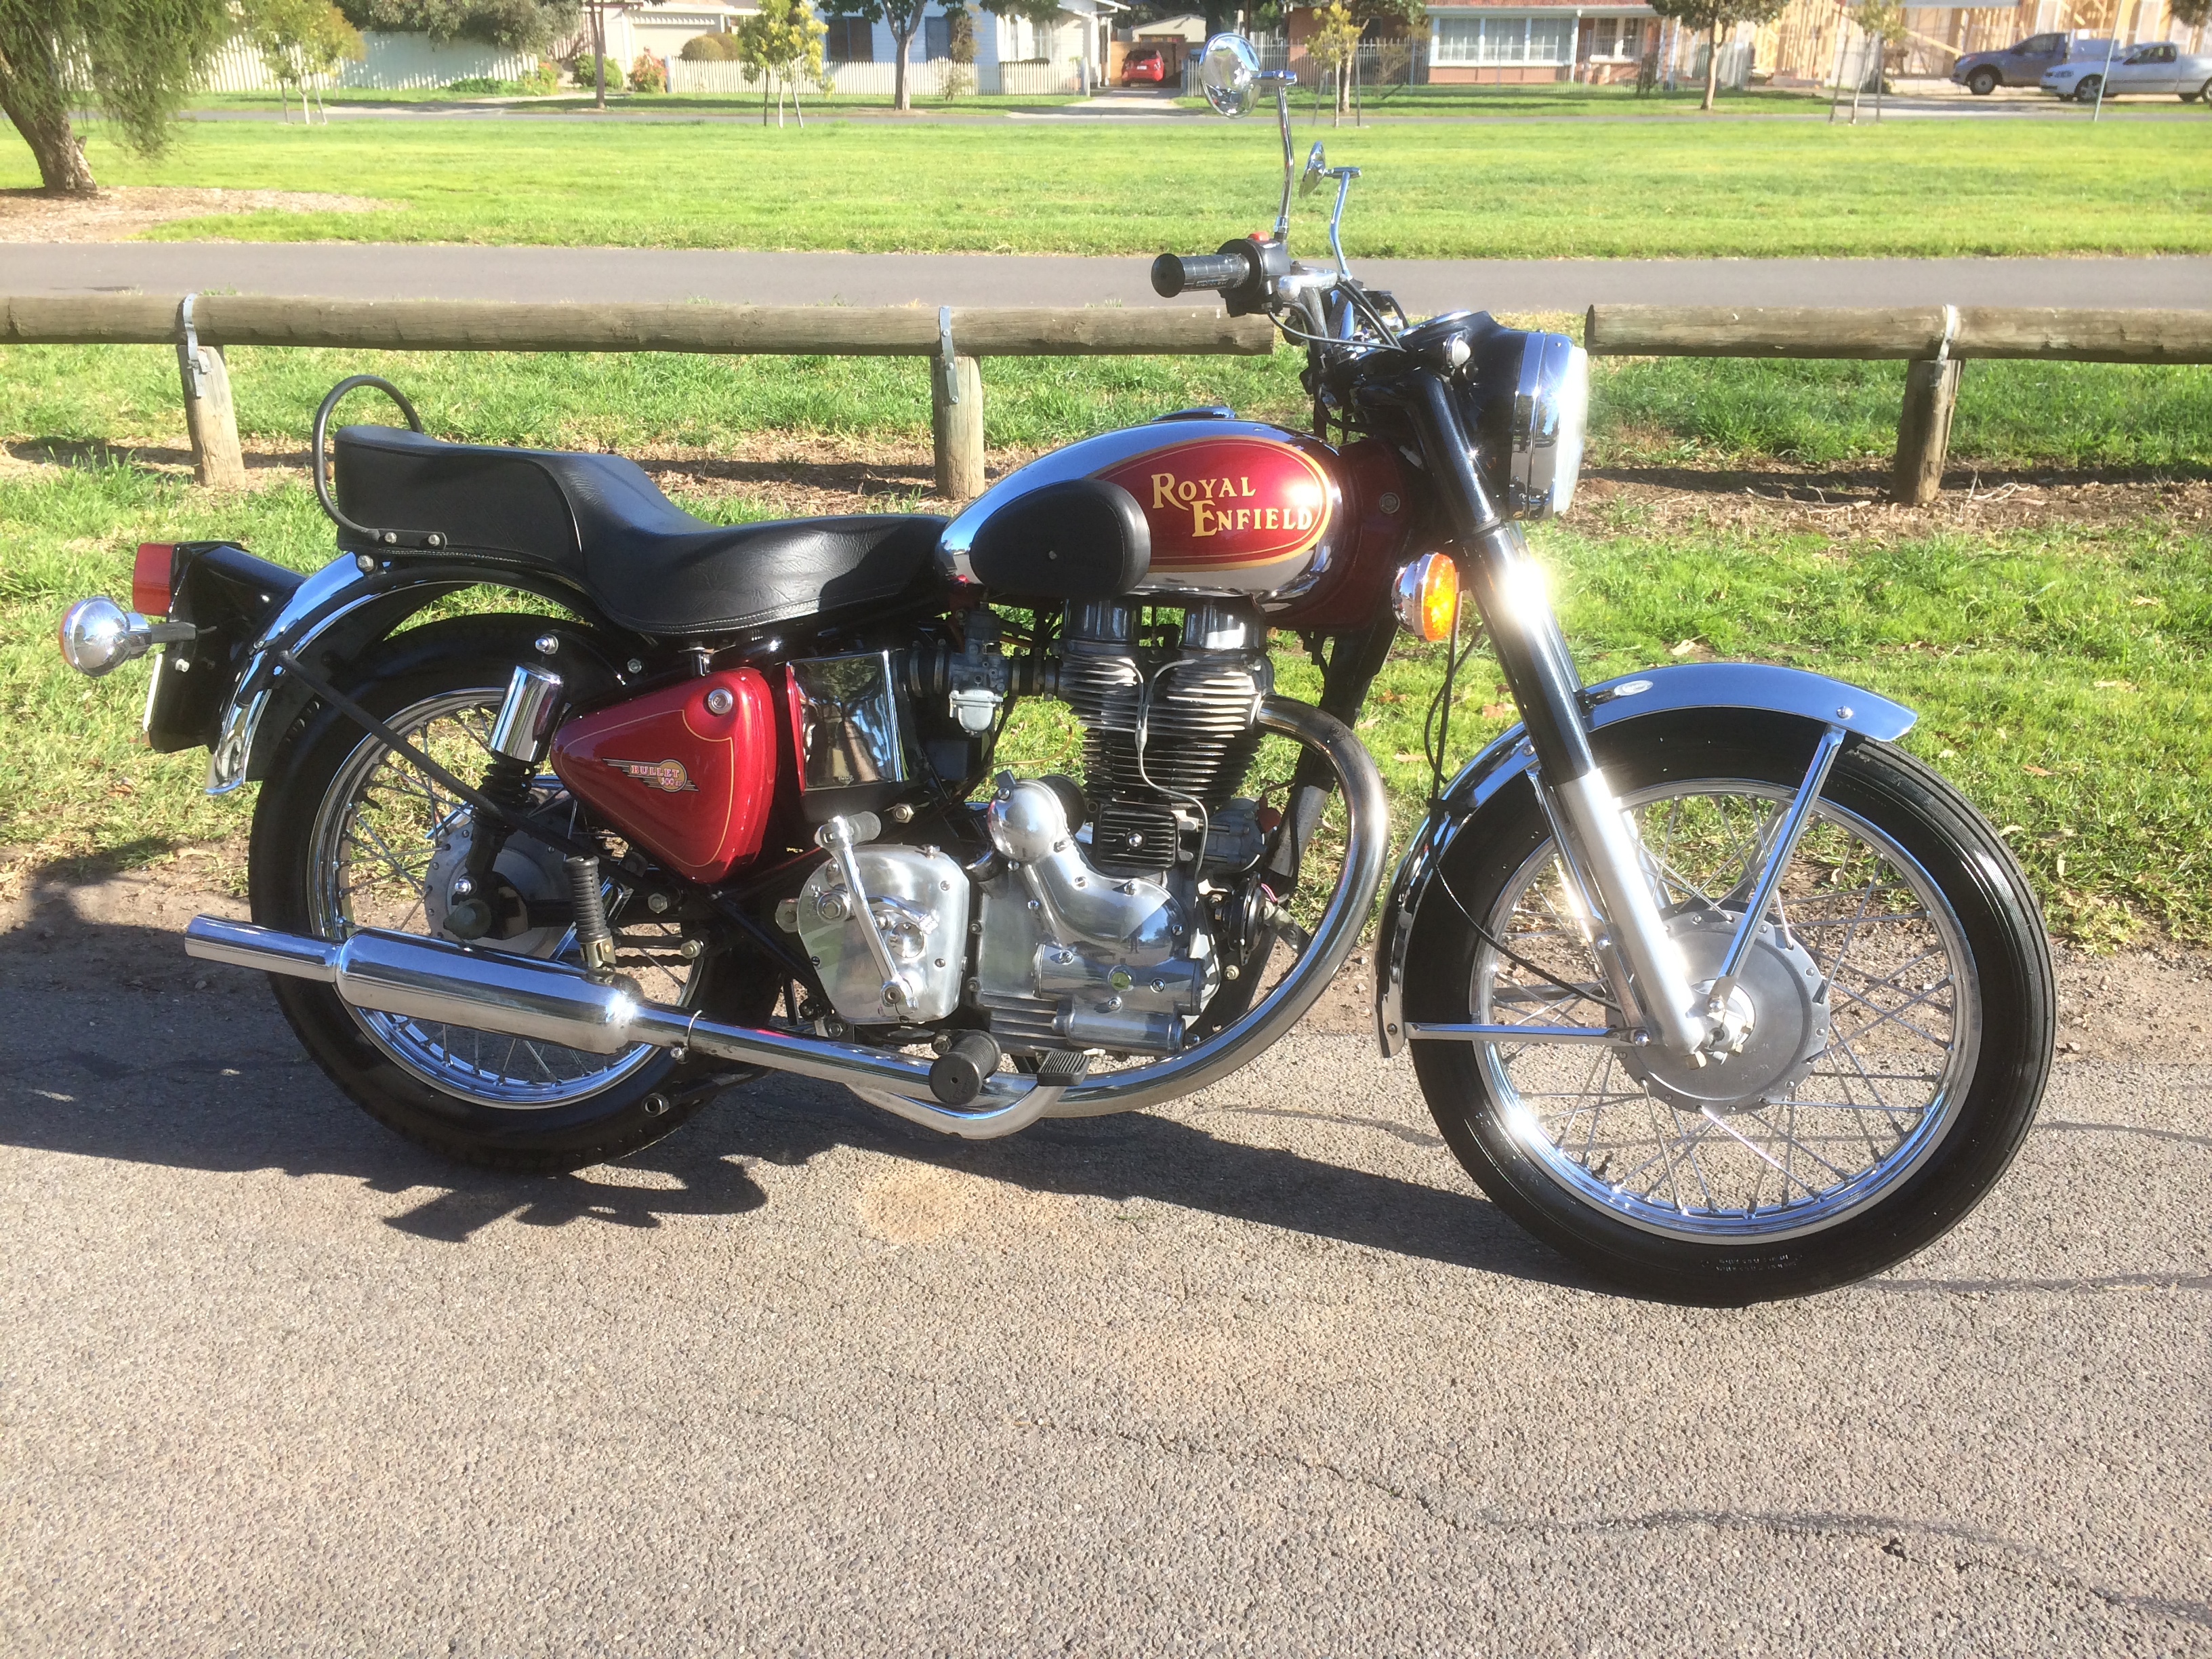 Royal Enfield Bullet 350 Classic 2009 images #123517